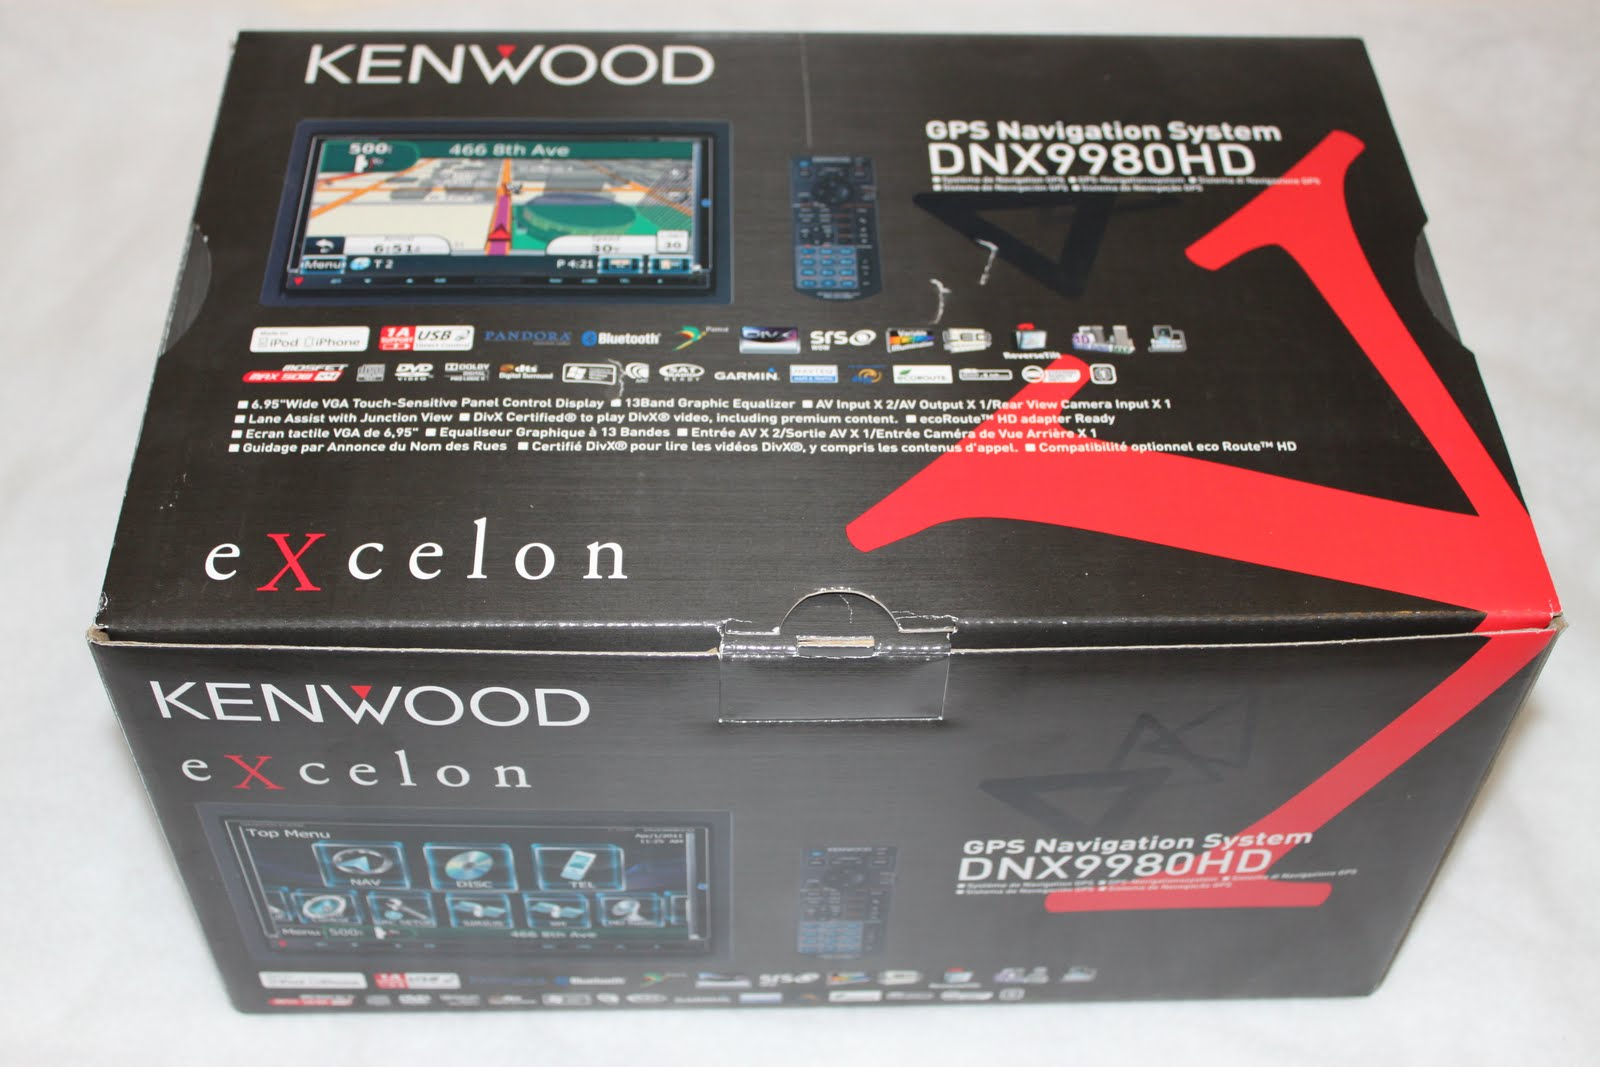 Kenwood Excelon DNX9980HD Fully Loaded Multimedia Navigation Car Receiver  Review